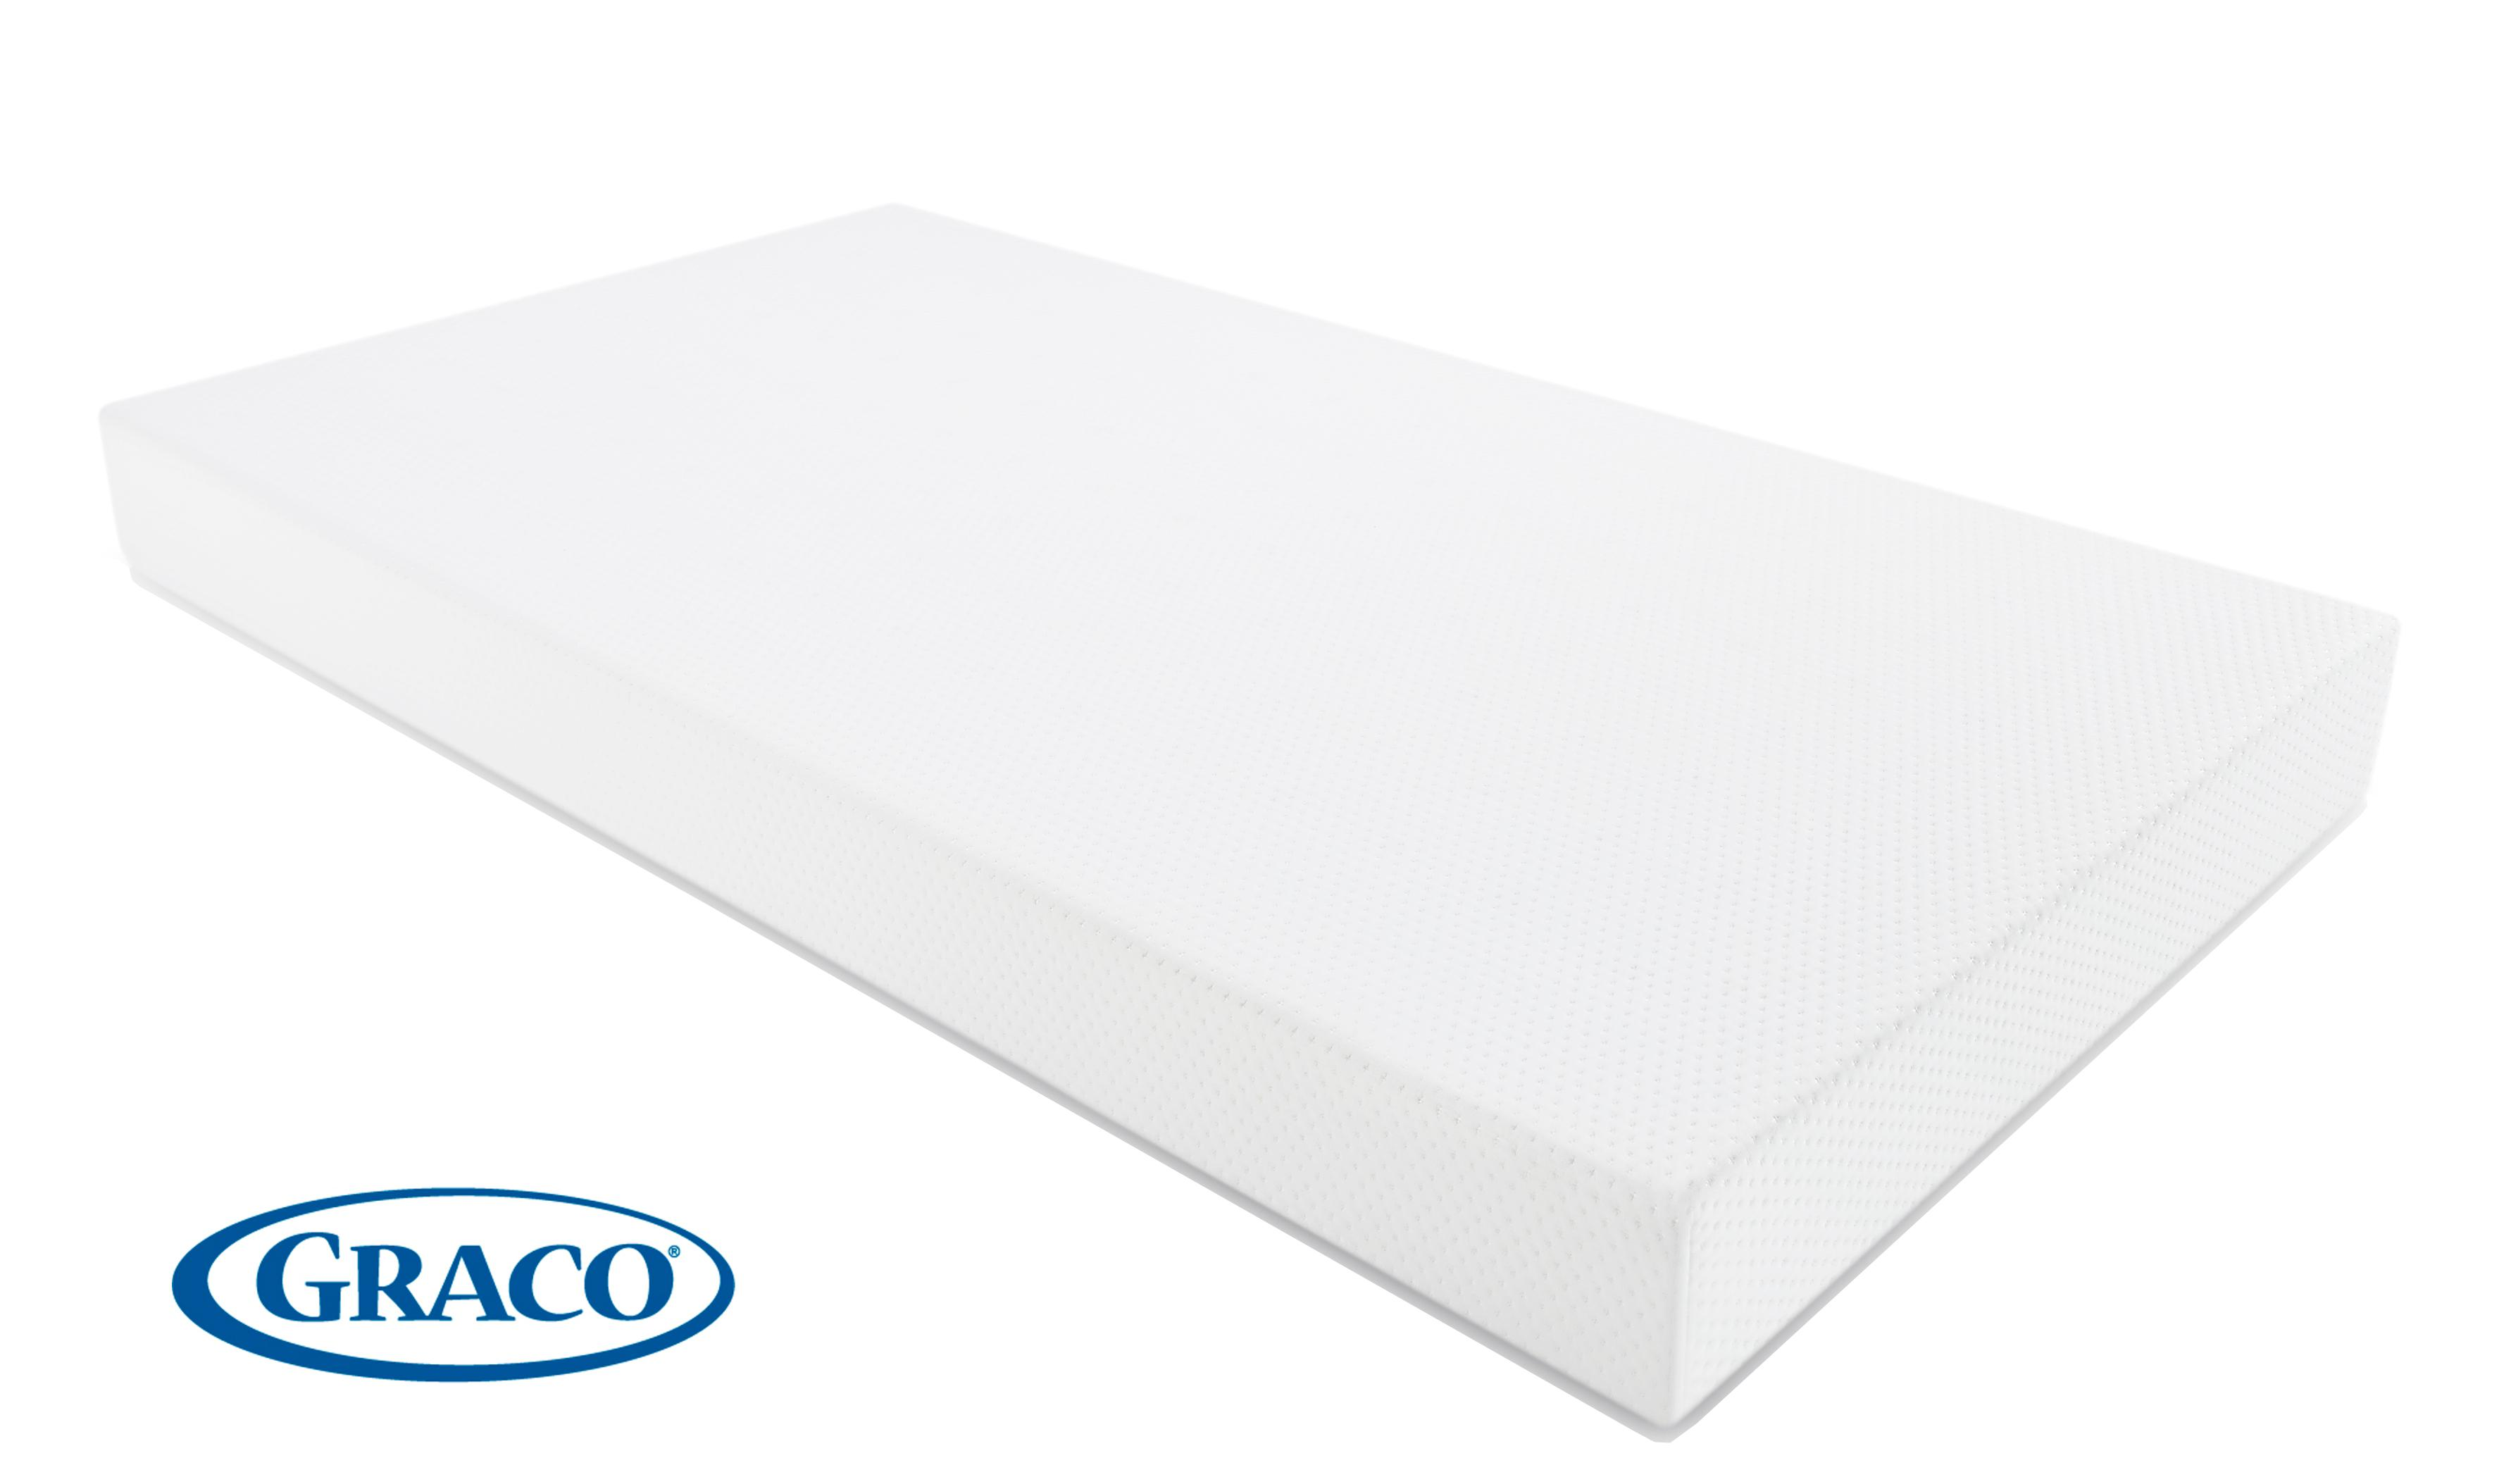 Graco Premium Foam Crib And Toddler Bed Mattress Amazon